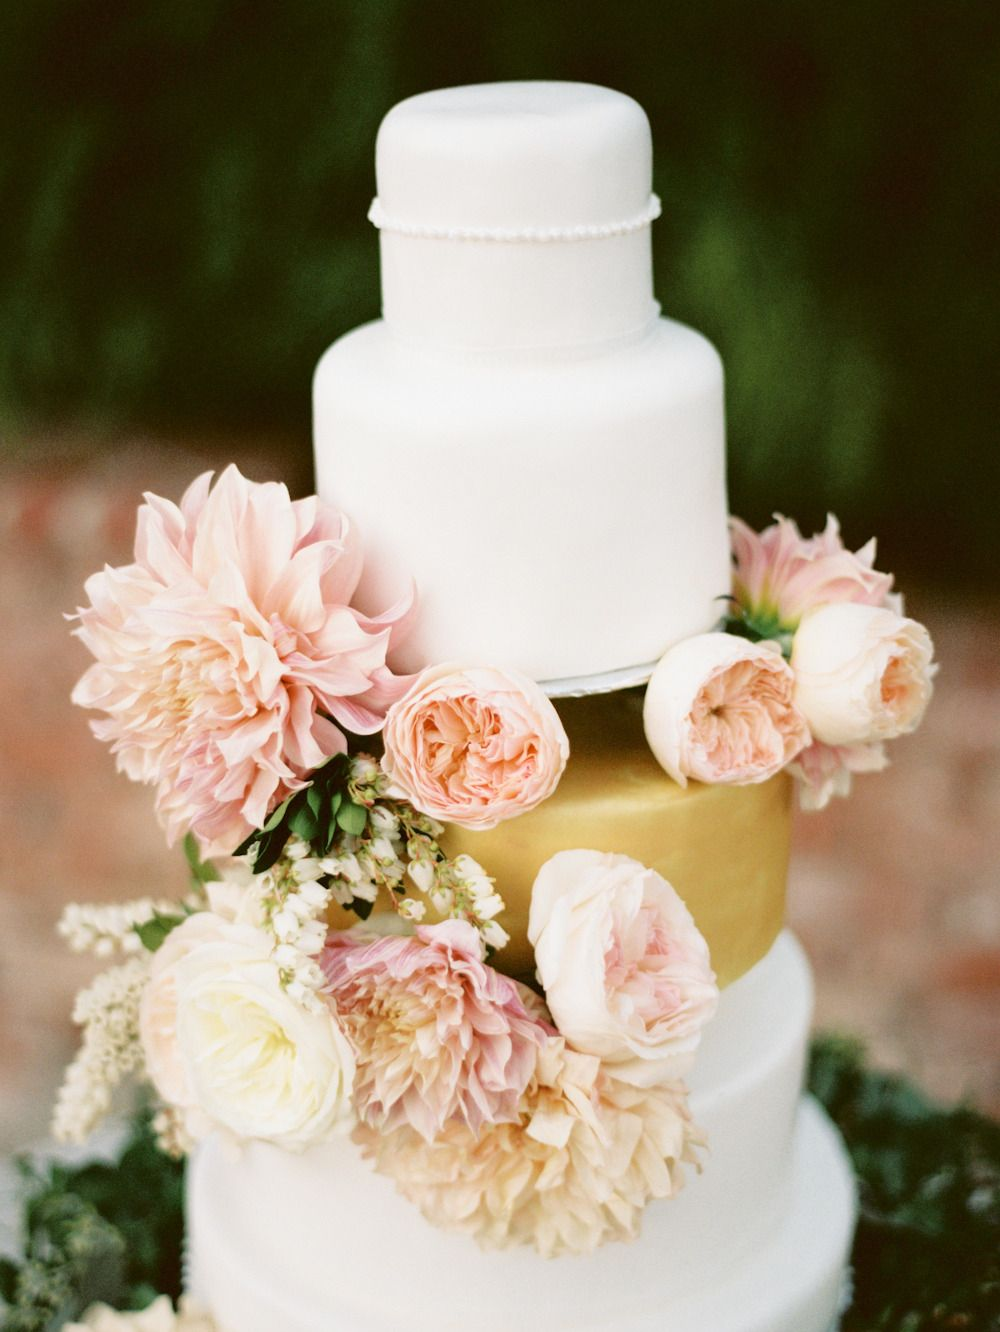 Wedding Cake - One layer of Gold... really different! | See more of the wedding on Style Me Pretty: http://www.StyleMePretty.com/2014/02/26/elegant-del-mar-garden-wedding/ Photography: Ashley Kelemen